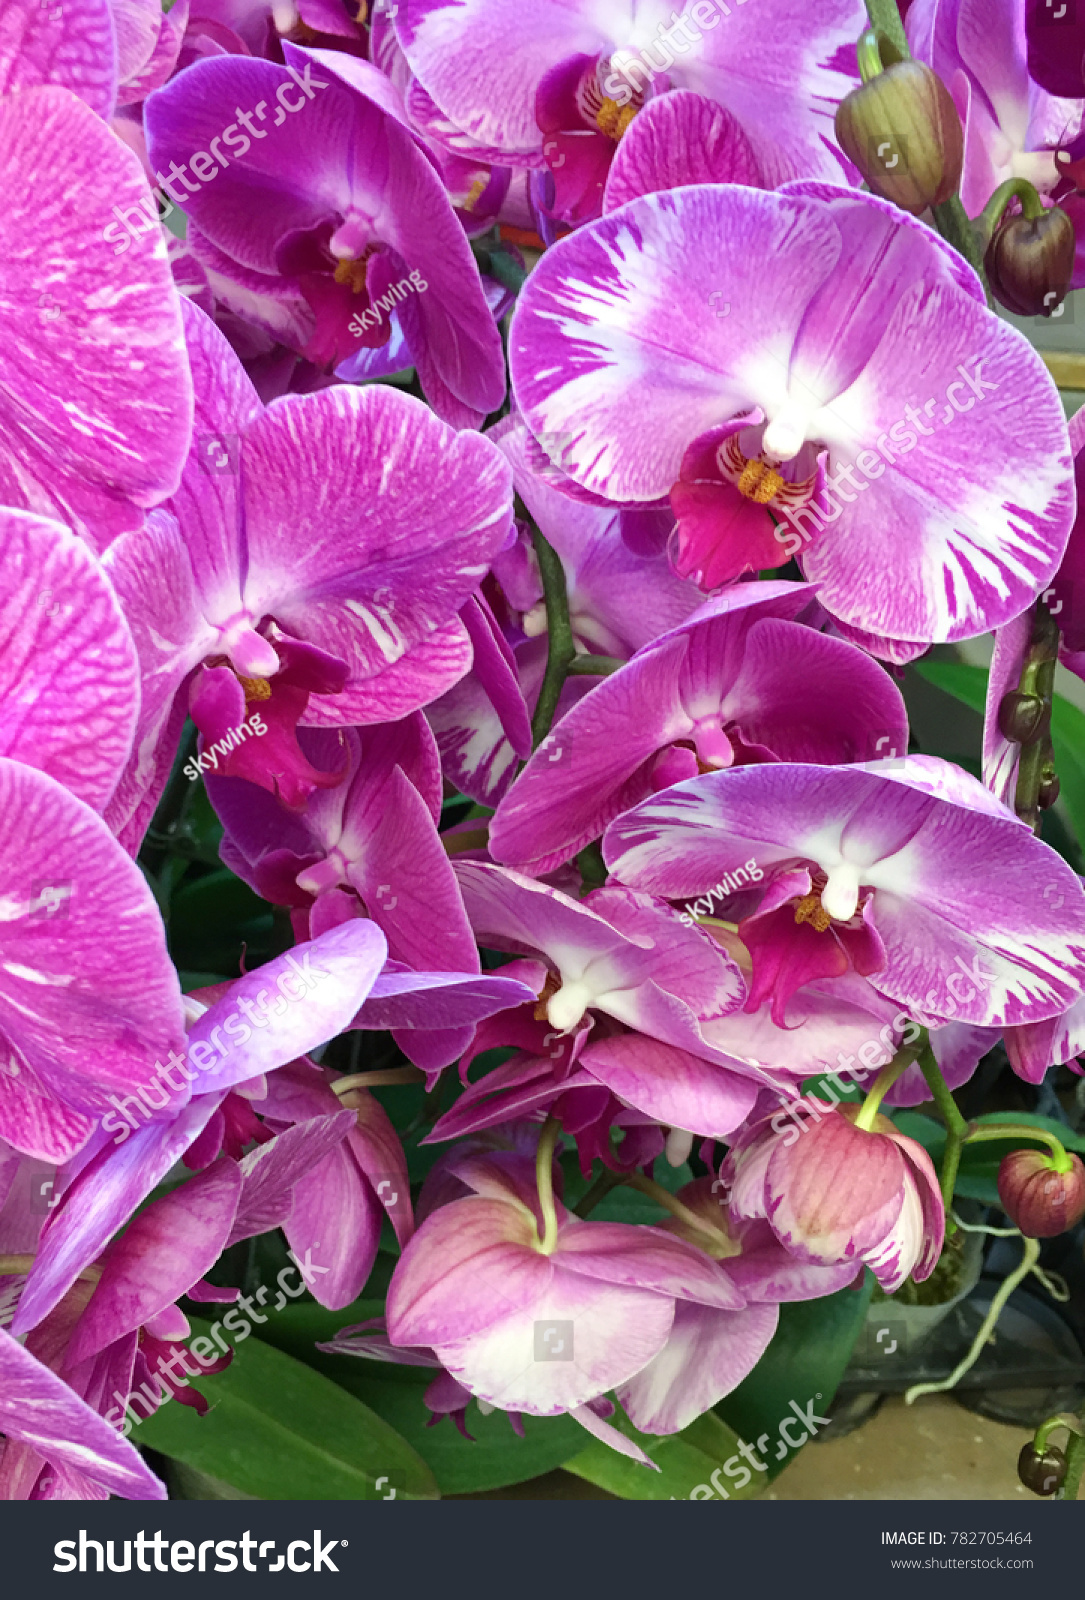 Spotted Pink Orchids Flower Blooming Colorful Flower Blossom